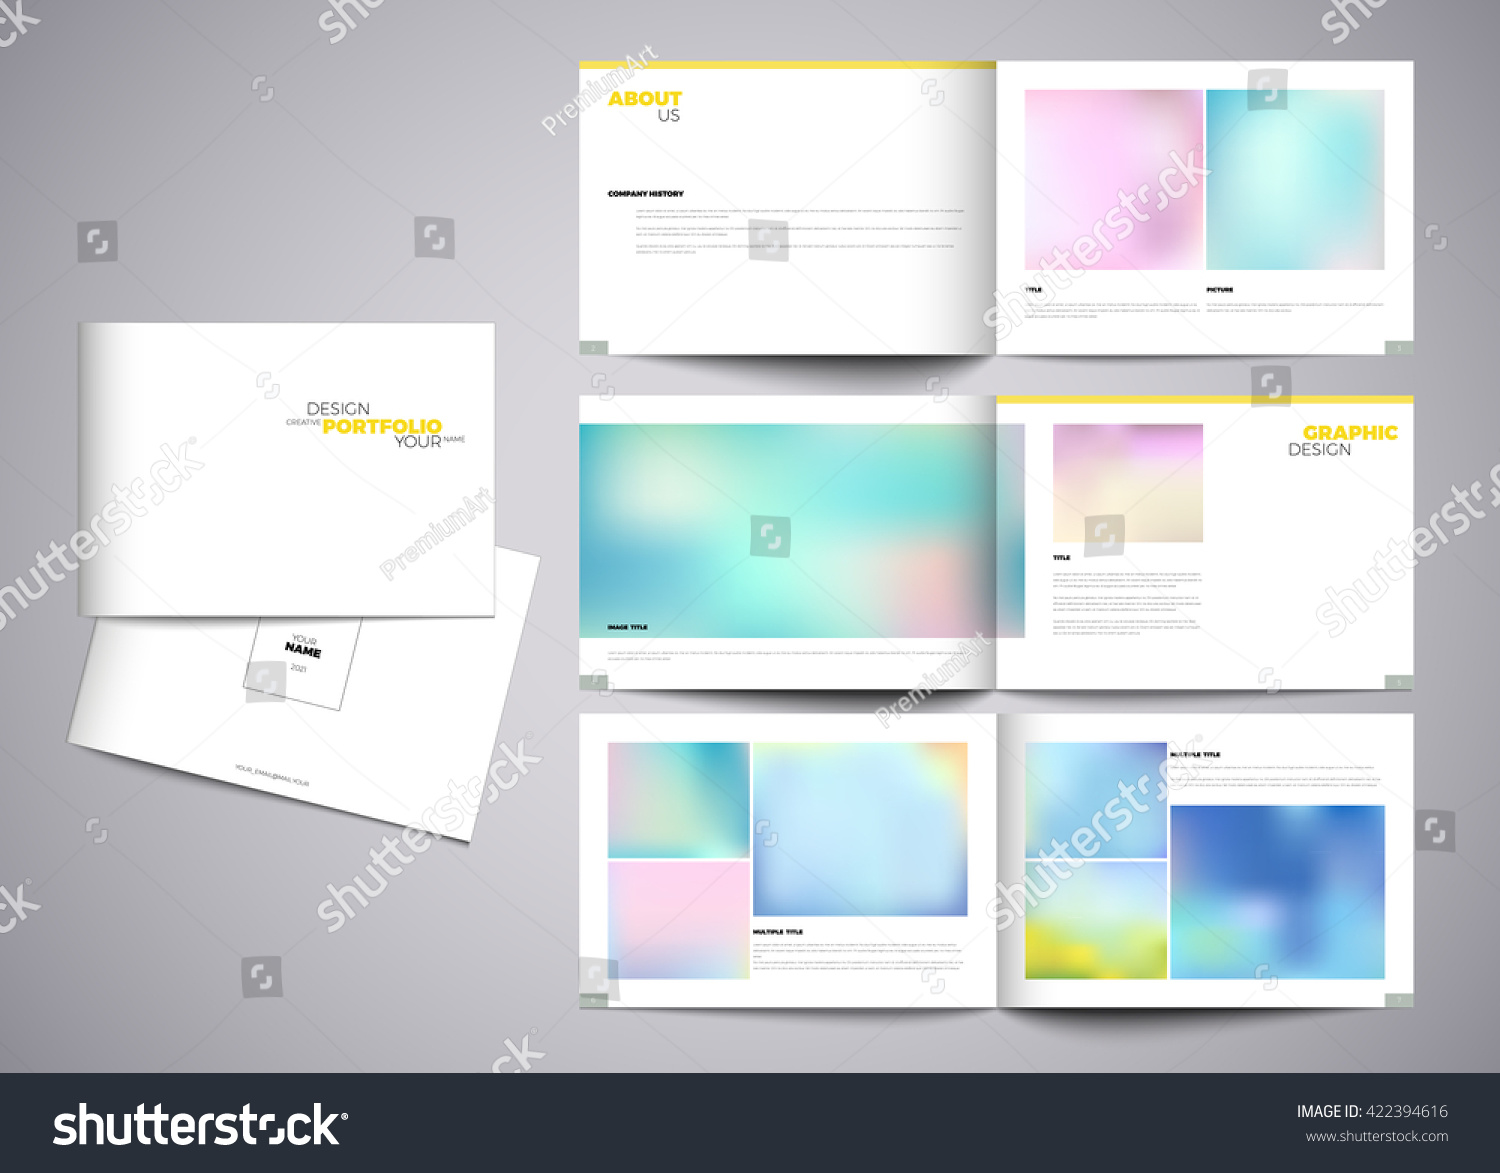 Graphic design studio portfolio template white stock vector graphic design studio portfolio template white creative pages and cover design with your text pronofoot35fo Image collections